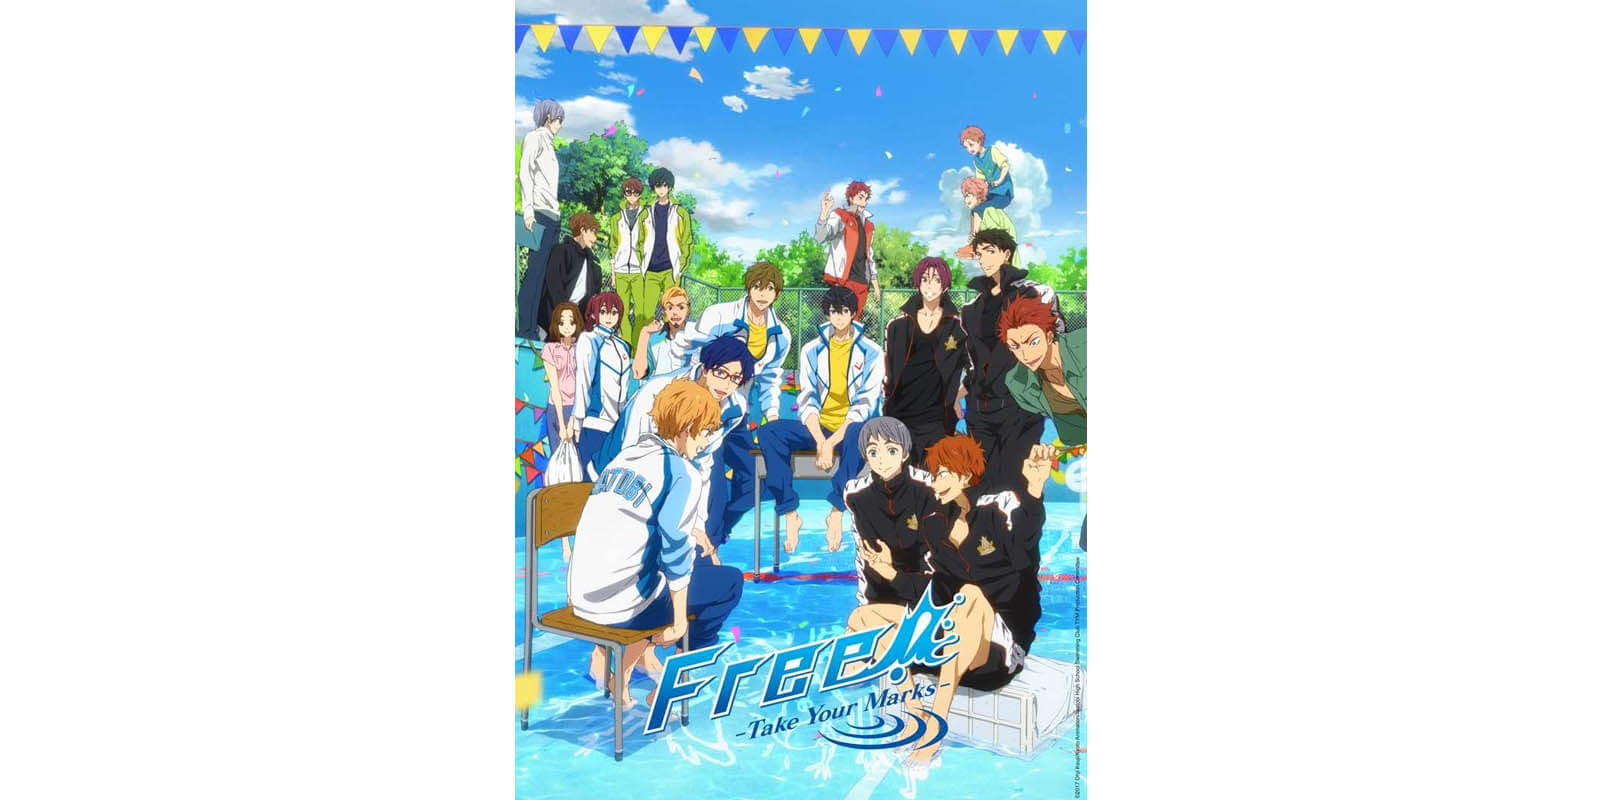 FREE! - take your marks -